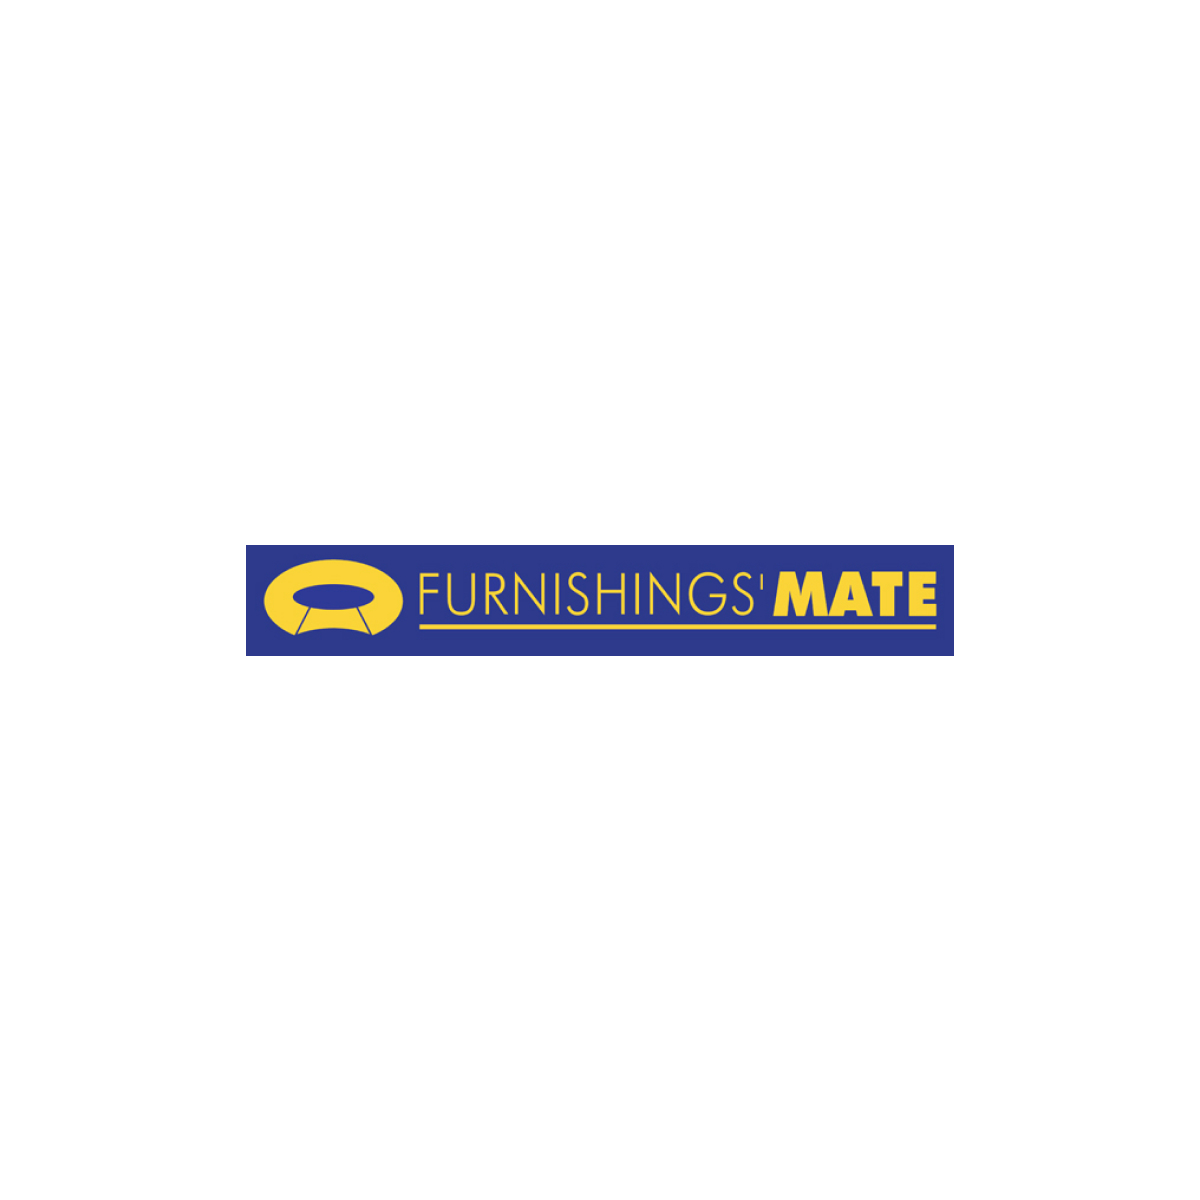 furnishings_mate